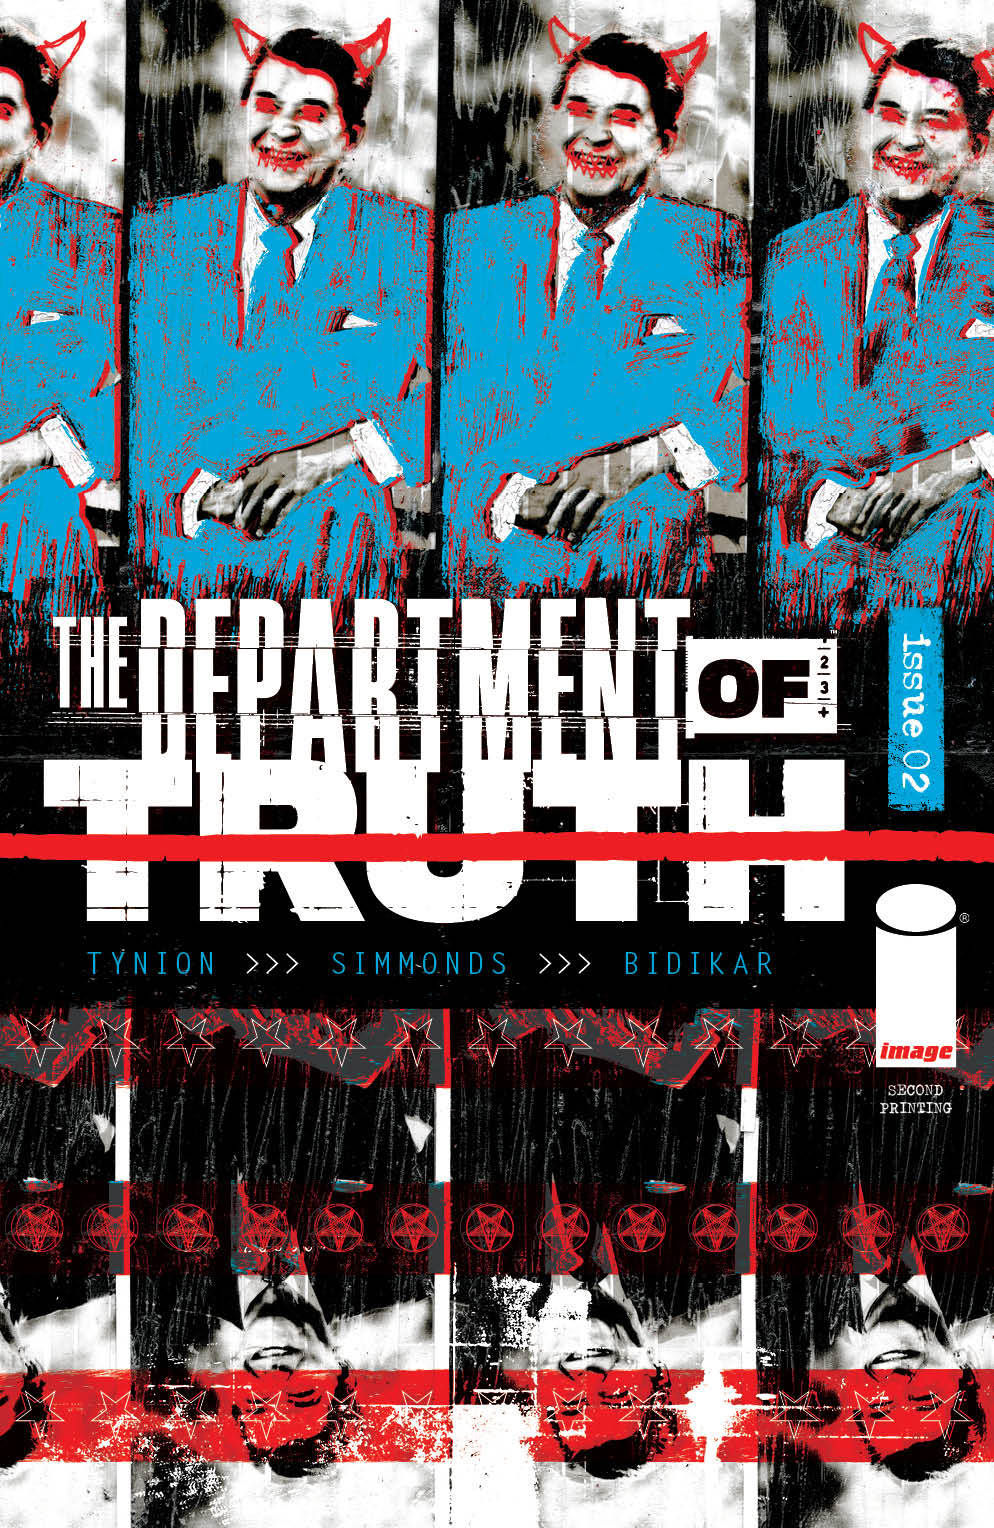 DeptofTruth_02-2ndPrint_150_c6815a0147f8285e3b5042ebb3626151 Three issues of THE DEPARTMENT OF TRUTH sell out